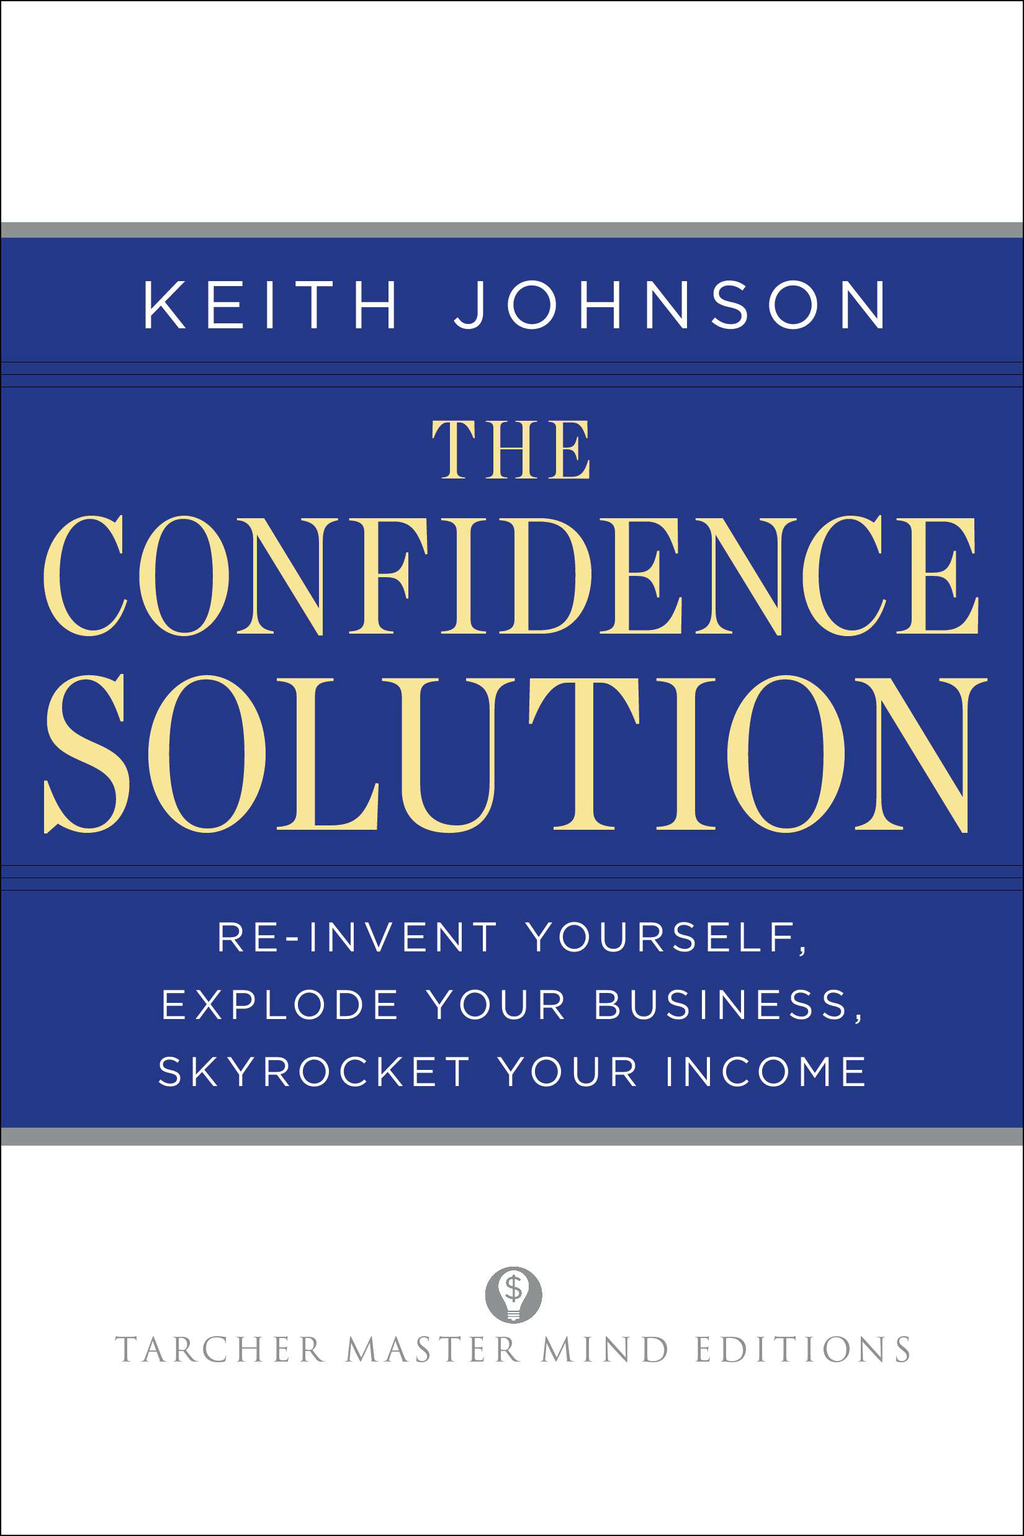 The Confidence Solution: Reinvent Yourself, Explode Your Business, Skyrocket Your Income